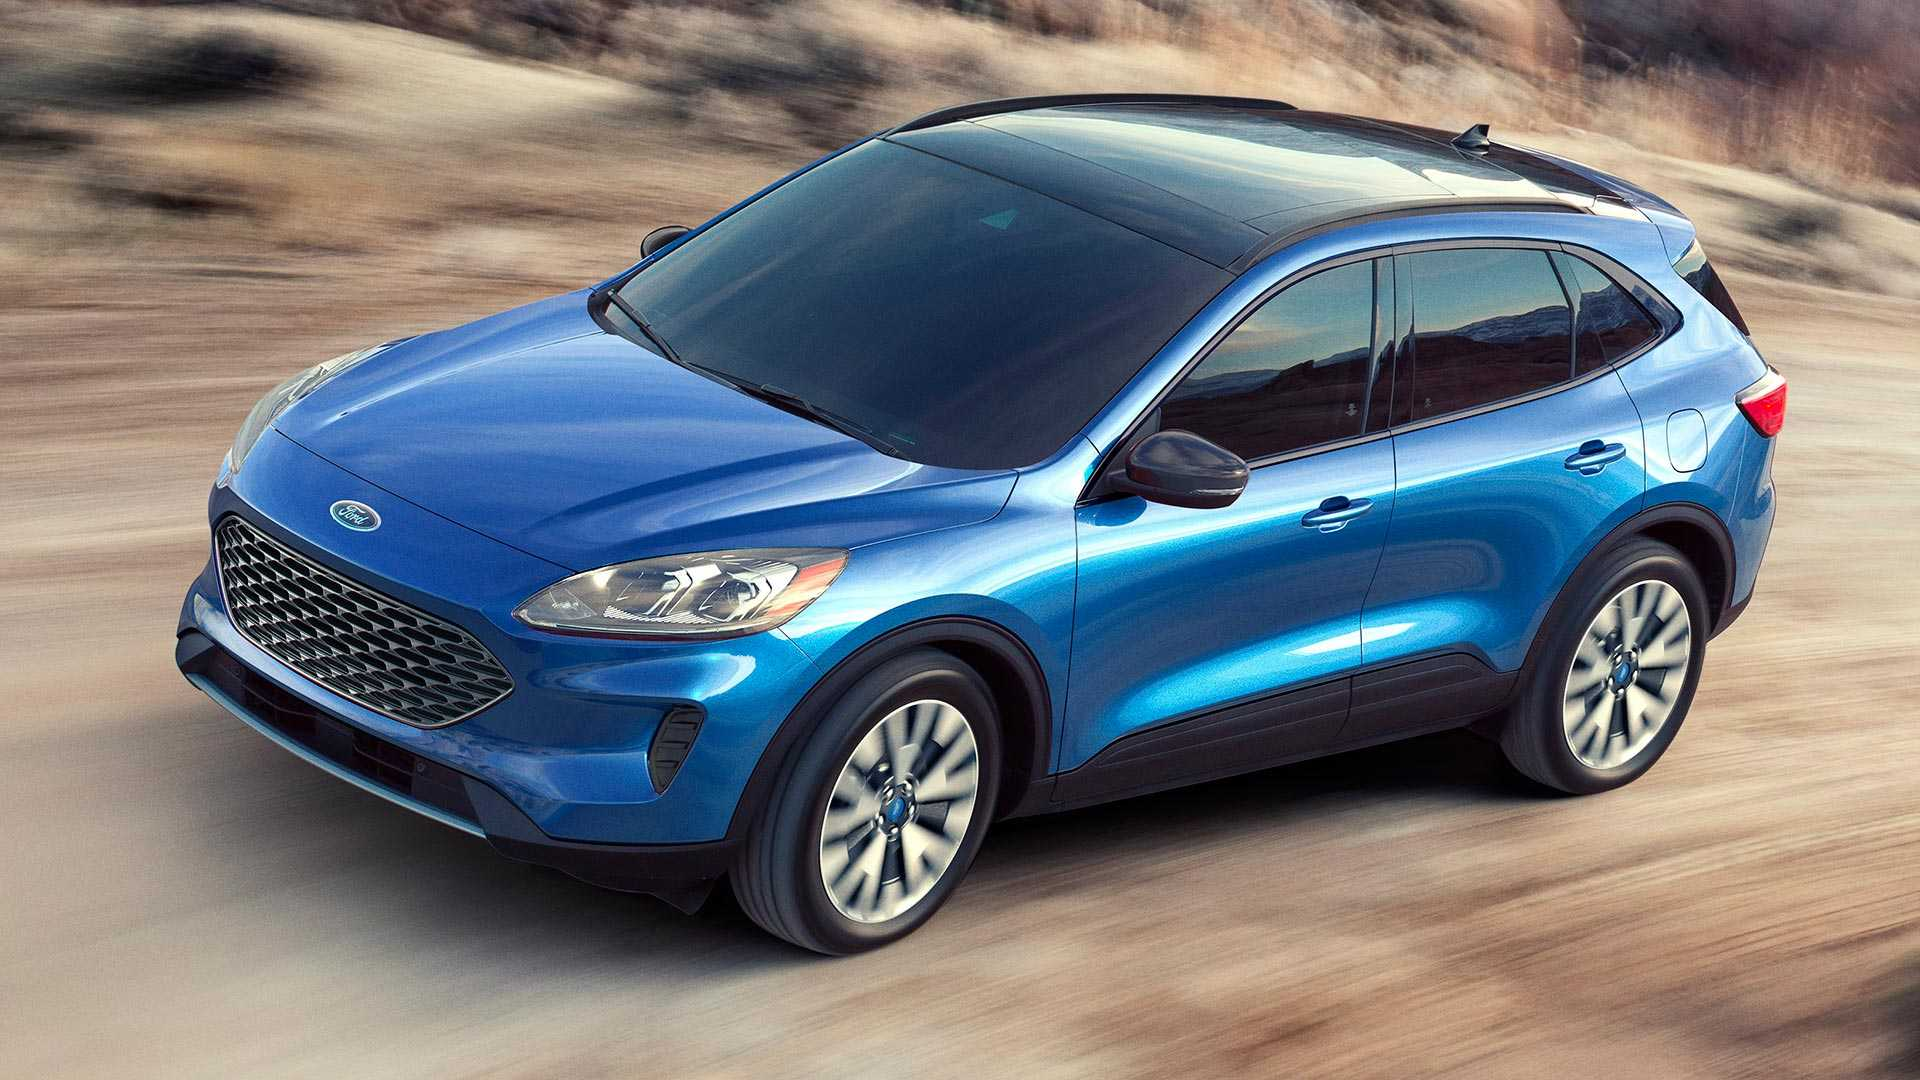 34 A Ford Hybrid Escape 2020 Spy Shoot